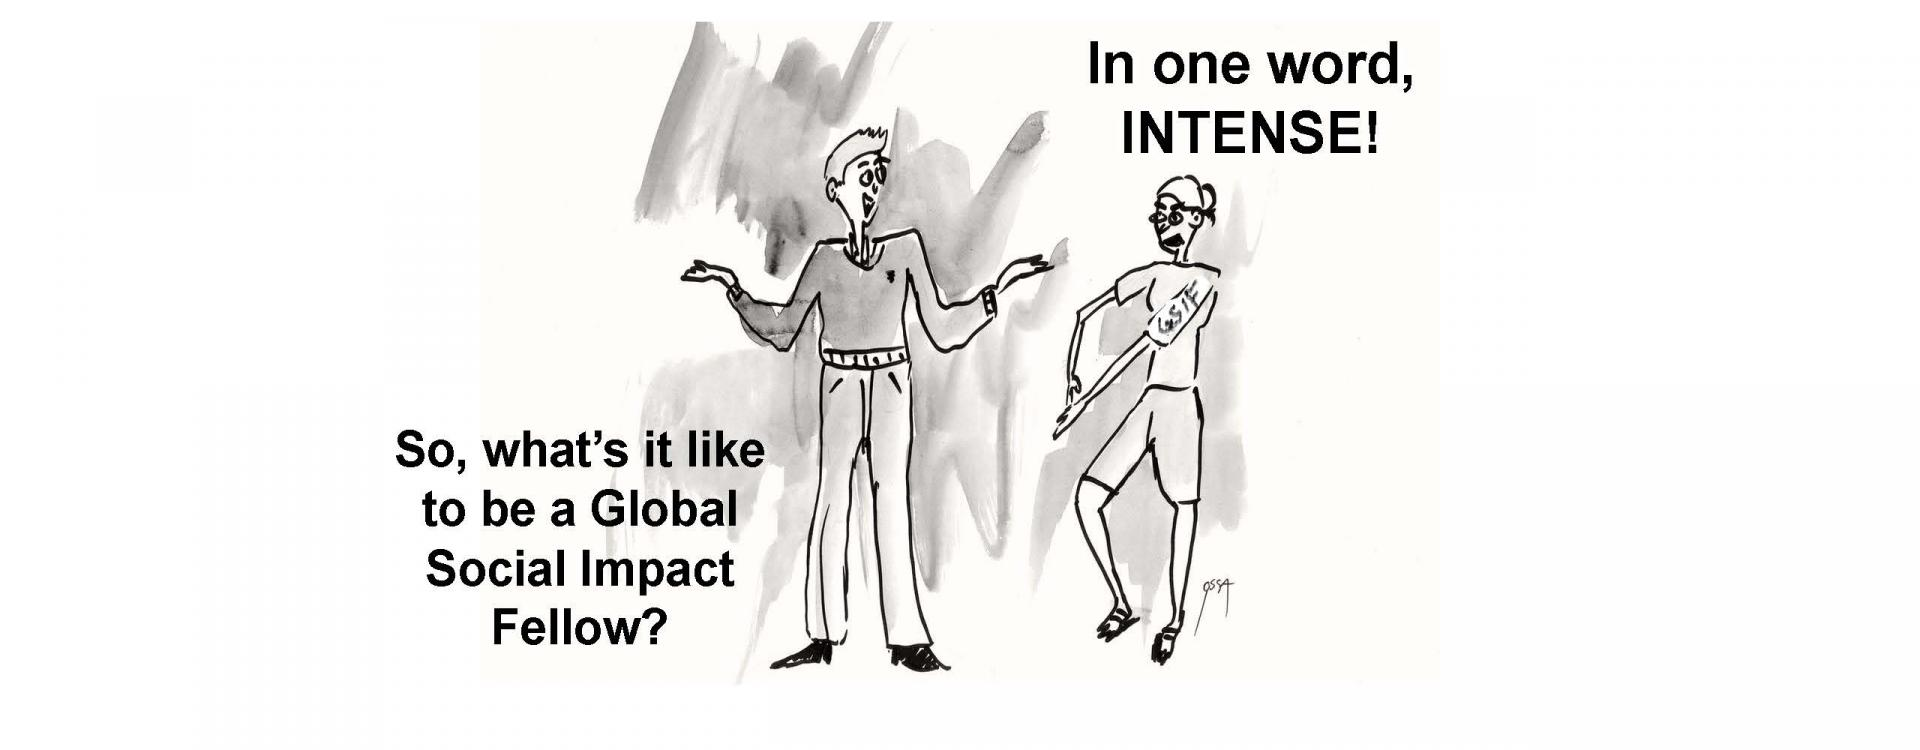 So whats it like to be a Global Social Impact Fellow? In one word, INTENSE!